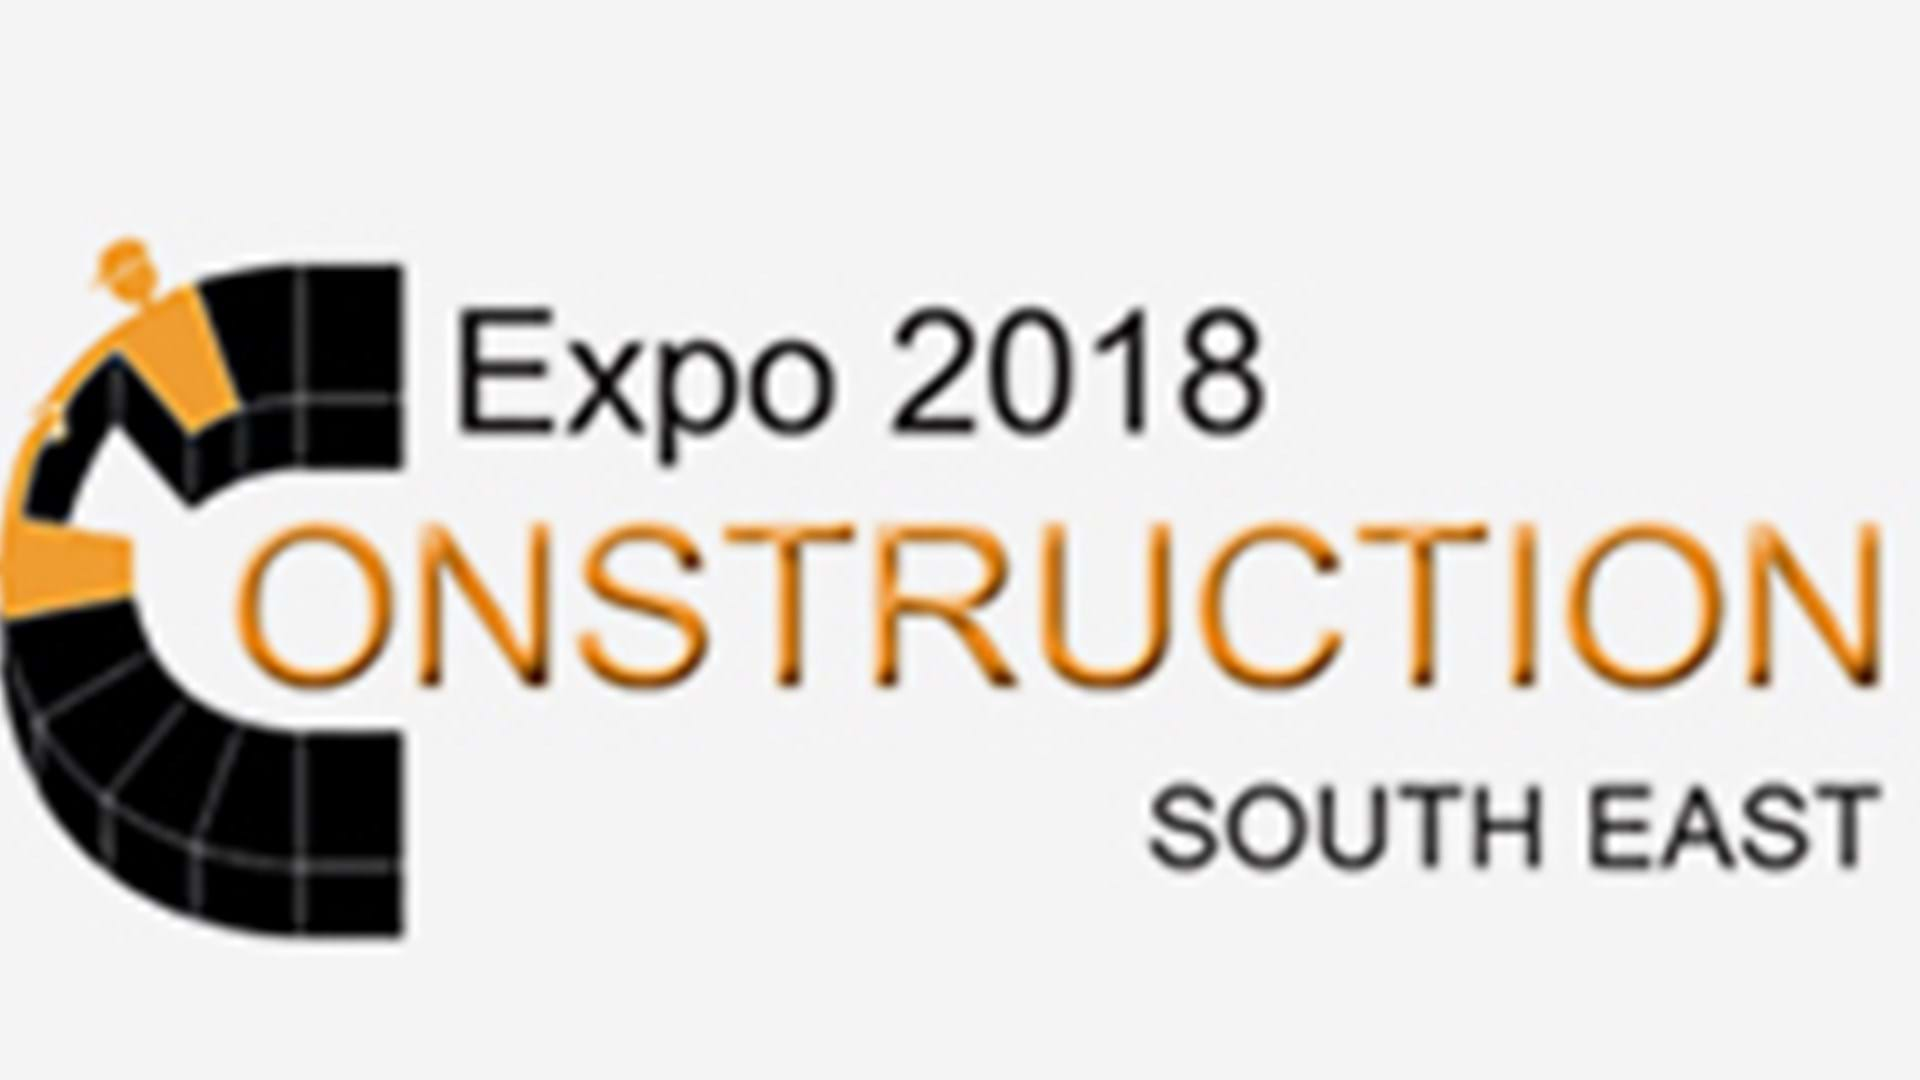 Expo 2018 Construction South East logo.